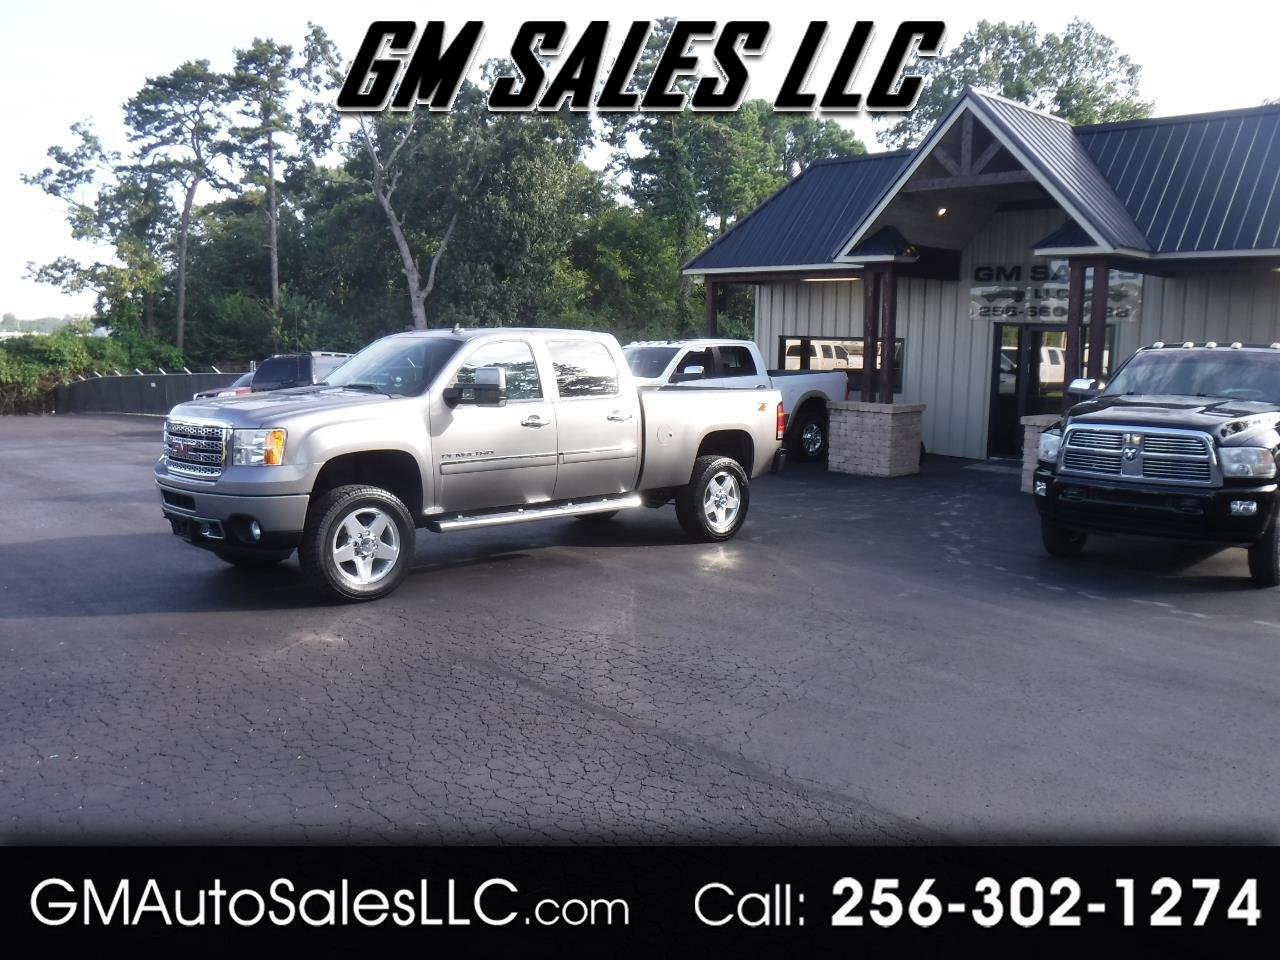 Used Cars for Sale Albertville AL 35951 GM Sales LLC